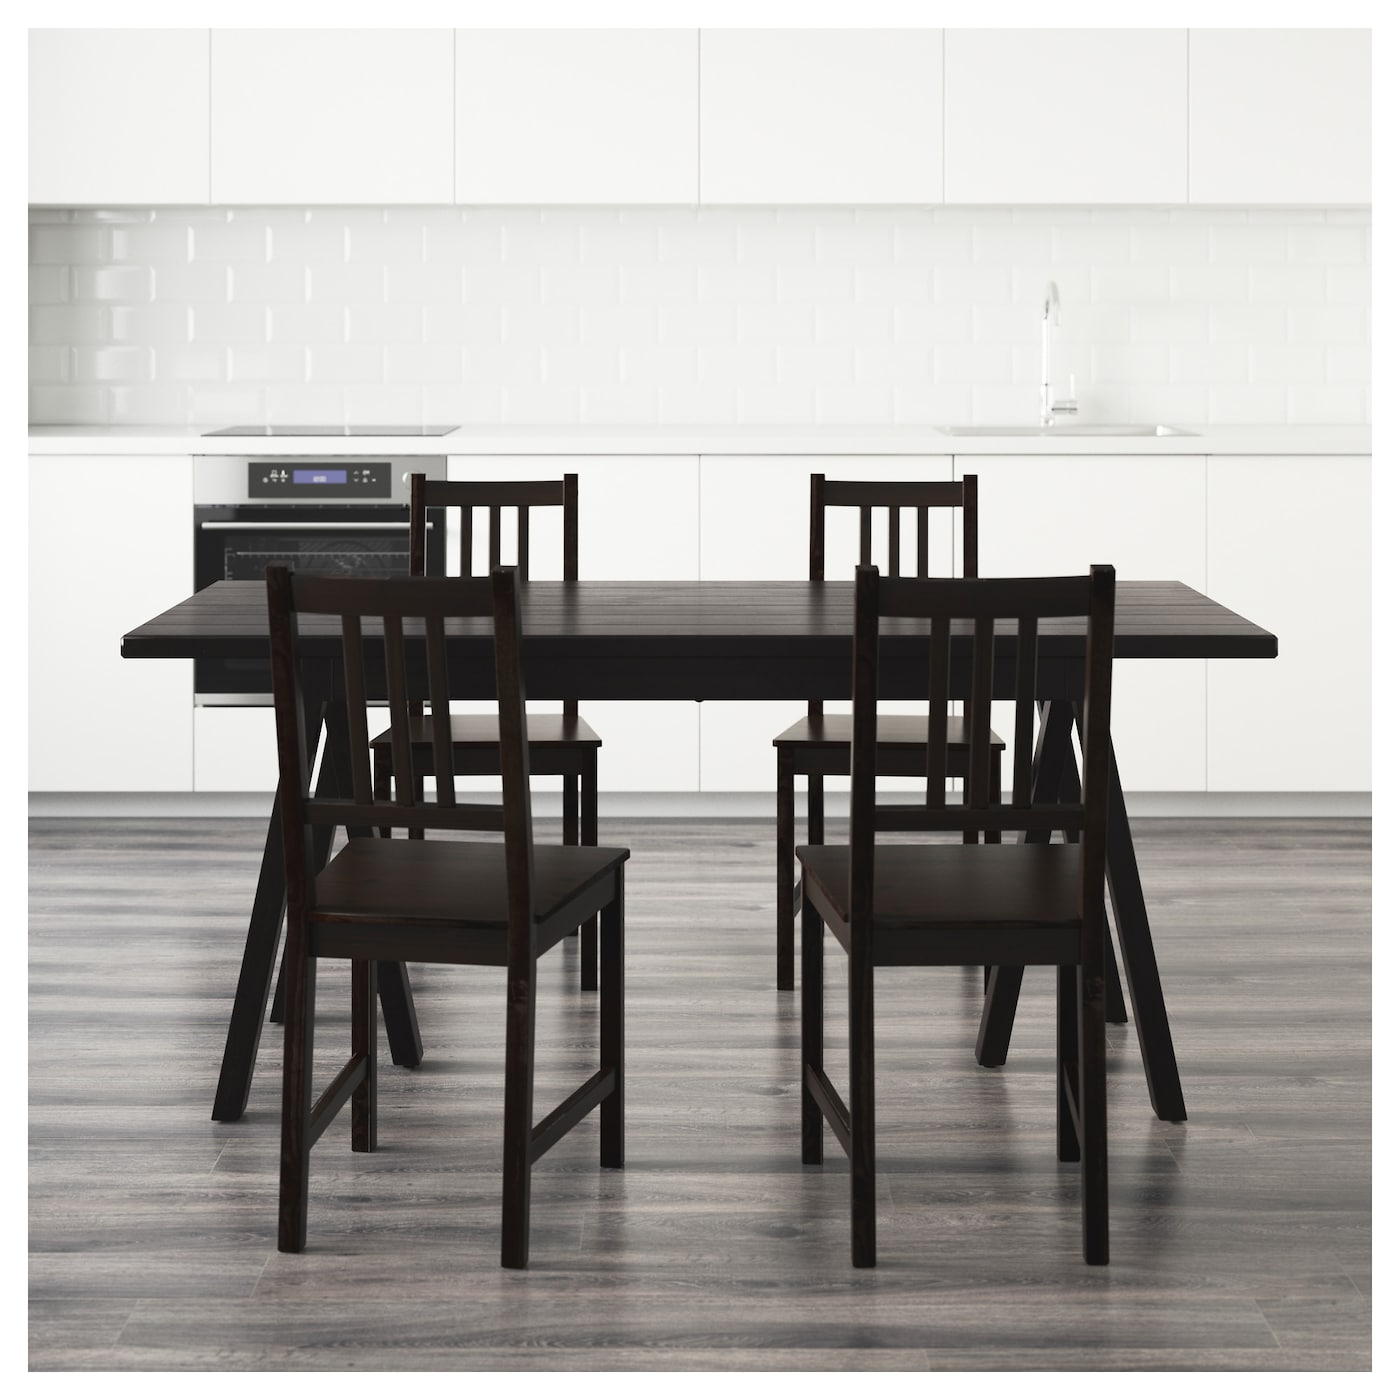 STEFANRYGGESTADGREBBESTAD Table and 4 chairs Blackbrown  : stefan ryggestad grebbestad table and 4 chairs black brown black0444476pe595010s5 from www.ikea.com size 2000 x 2000 jpeg 432kB